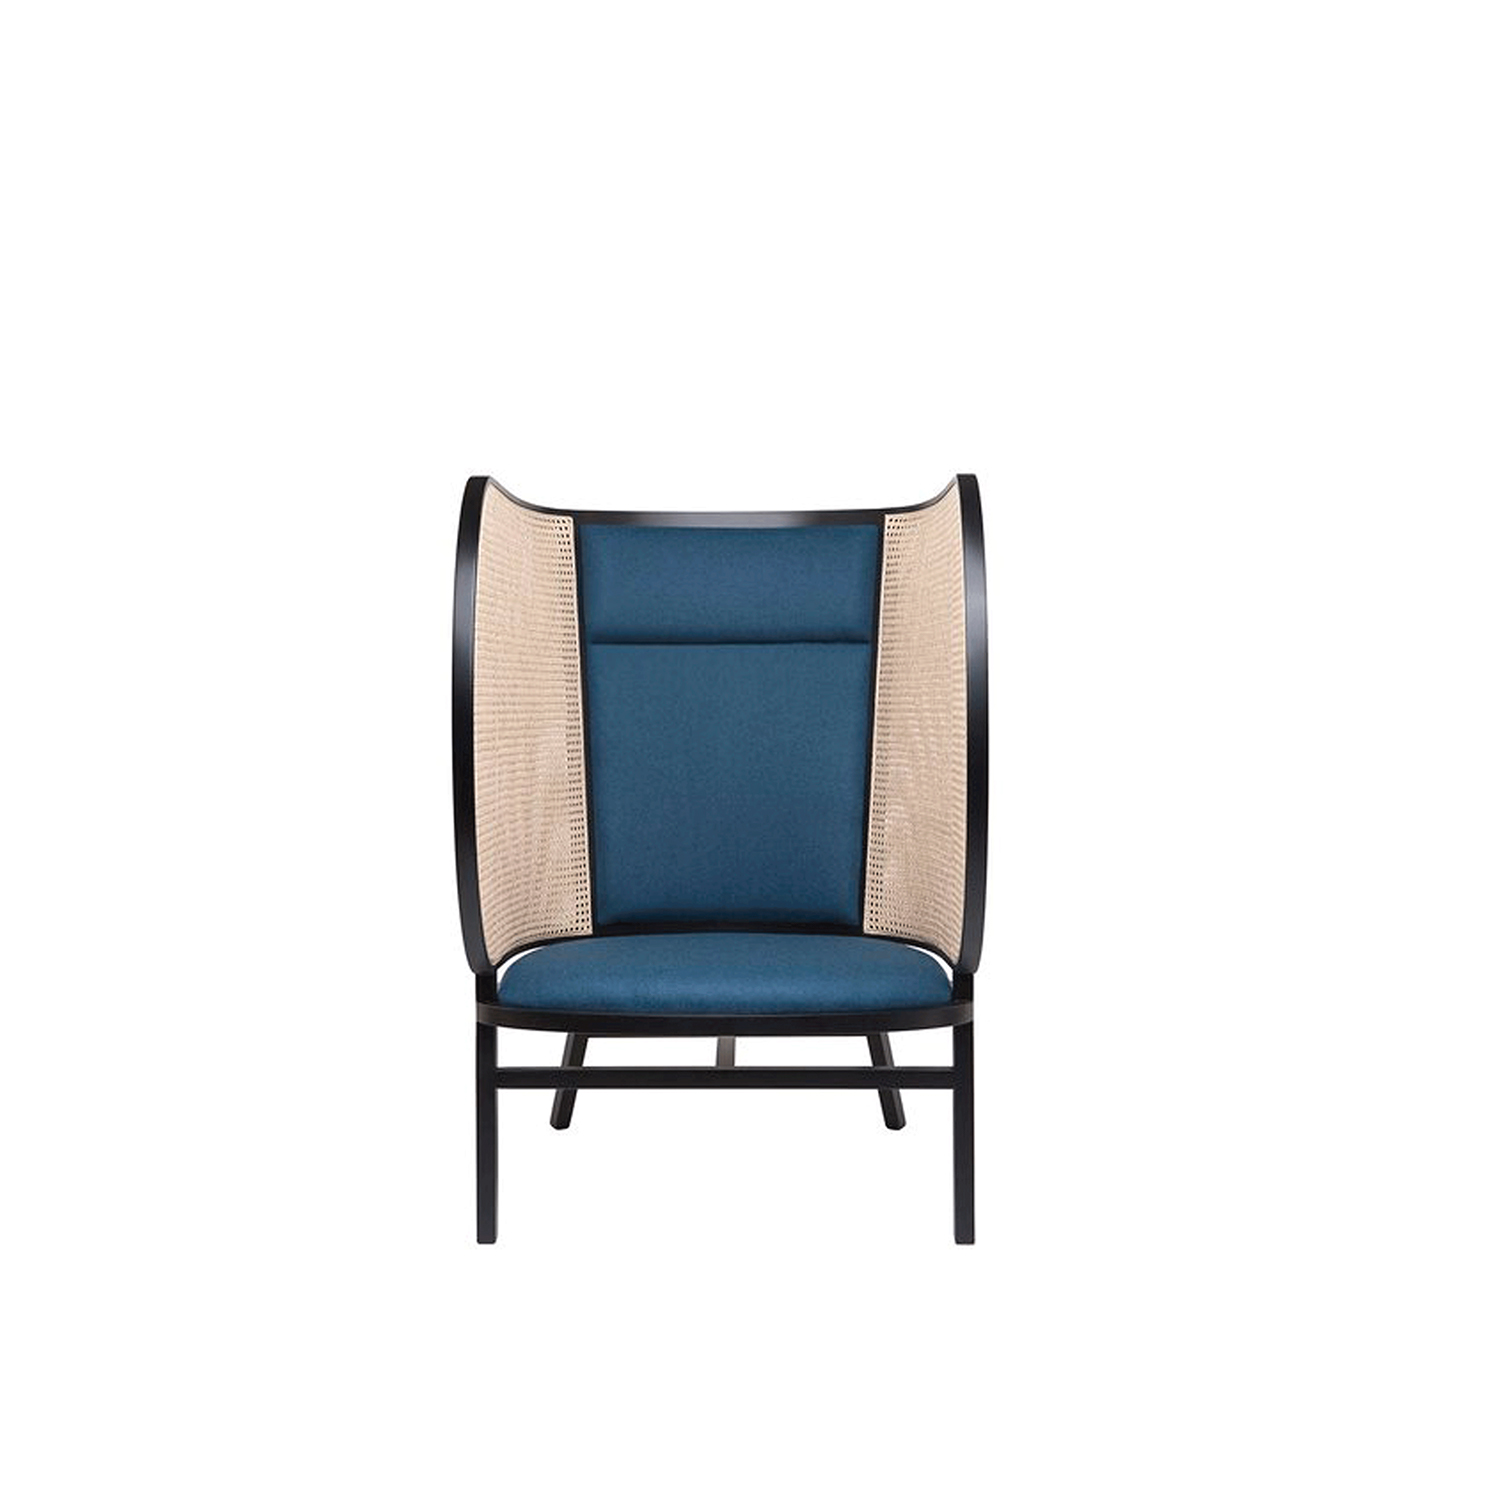 Hideout Lounge Chair - A magnificent and intimate piece, this lounge chair was designed by Front in 2015. It features two staples of Viennese traditional furniture: the Viennese straw that covers the enveloping sides, and the steam-bent beechwood with black lacquered finish. The structure features a round section and boasts a high back that creates a welcoming spot in a modern living room or classic study. A cushion adds comfort to the seat and central backrest.